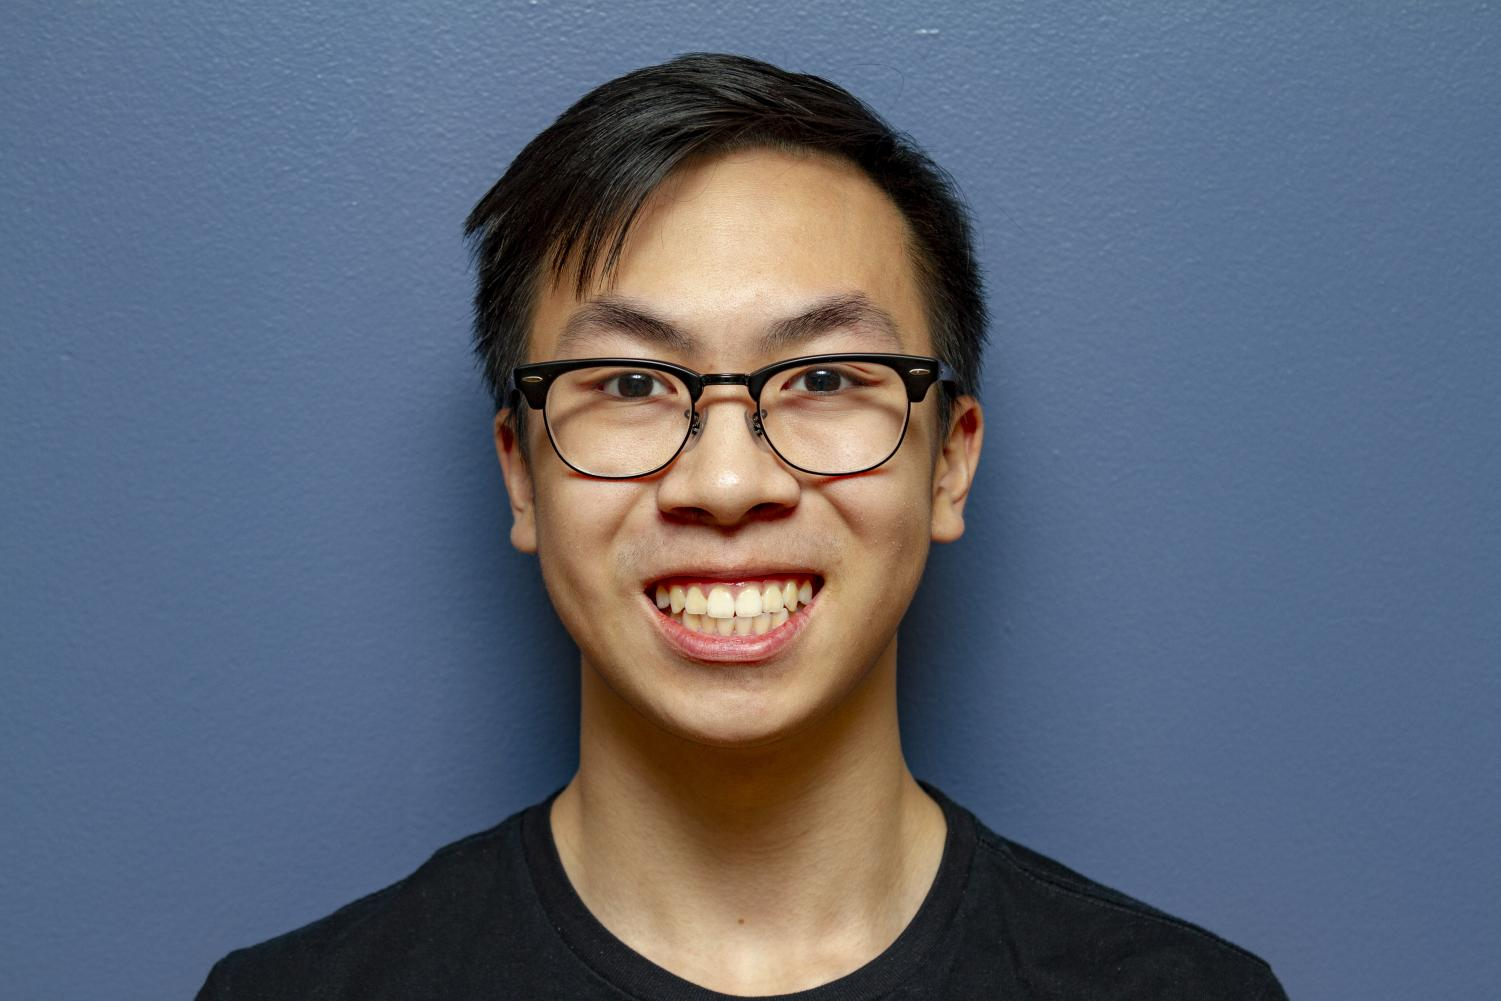 Kyle Li relies on naps after school to keep him motivated during late nights.